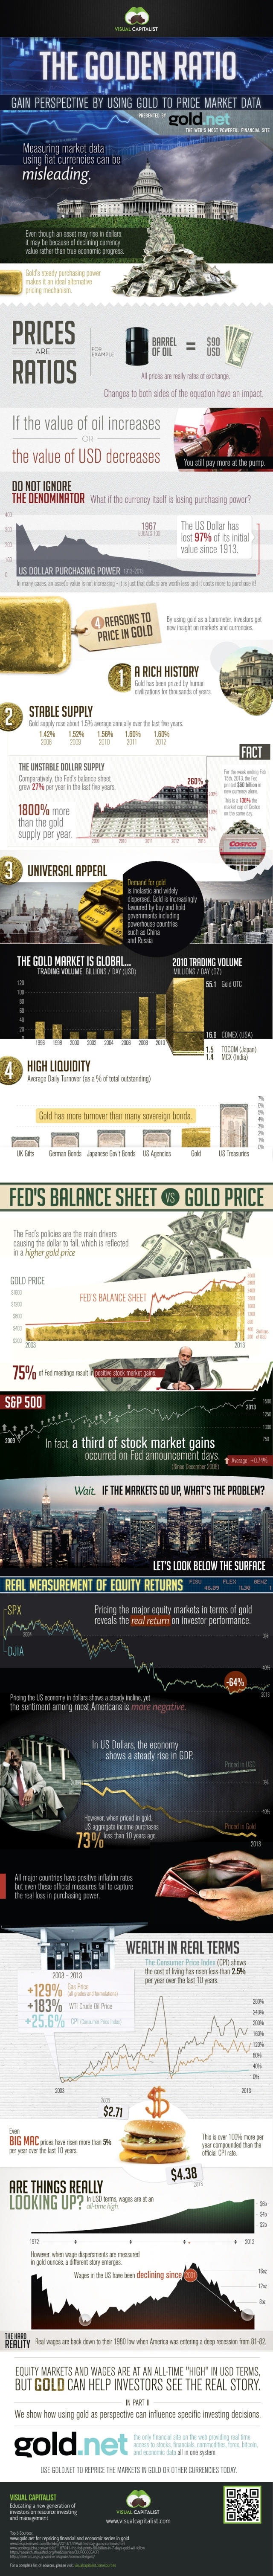 INFOGRAPHIC: Get the real price of anything using GOLD